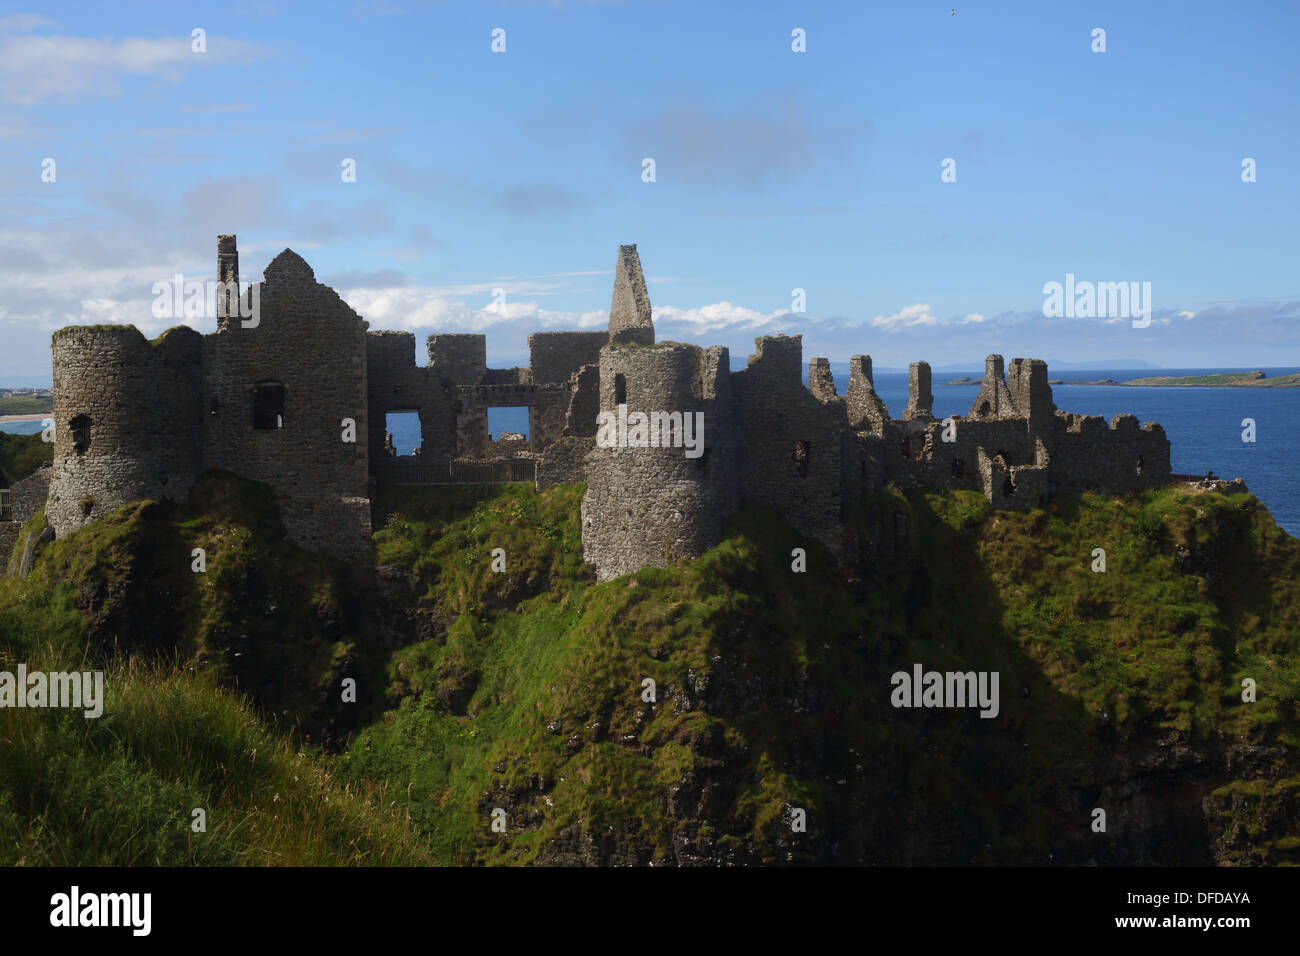 The ruins of Dunluce Castle atop a basalt cliff on the Causeway Coast in Northern Ireland. - Stock Image